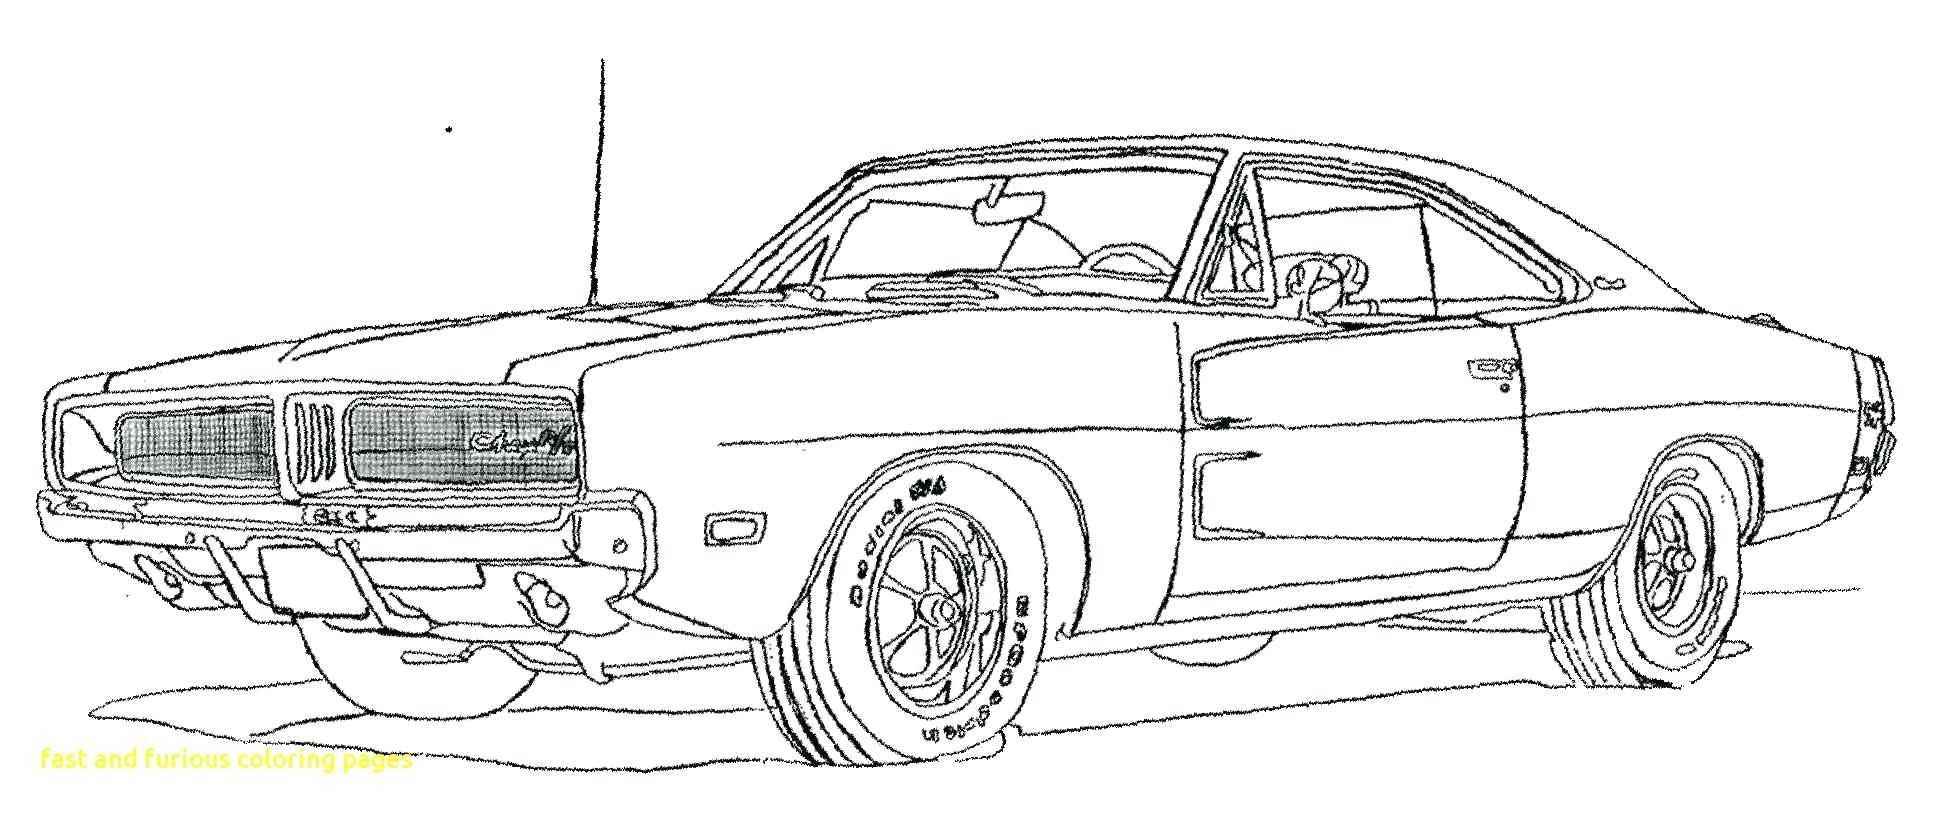 Dodge Charger Coloring Page Free Http Www Wallpaperartdesignhd Us Dodge Charger Coloring Page Free 47410 Dodge Charger Dodge Coloring Pages